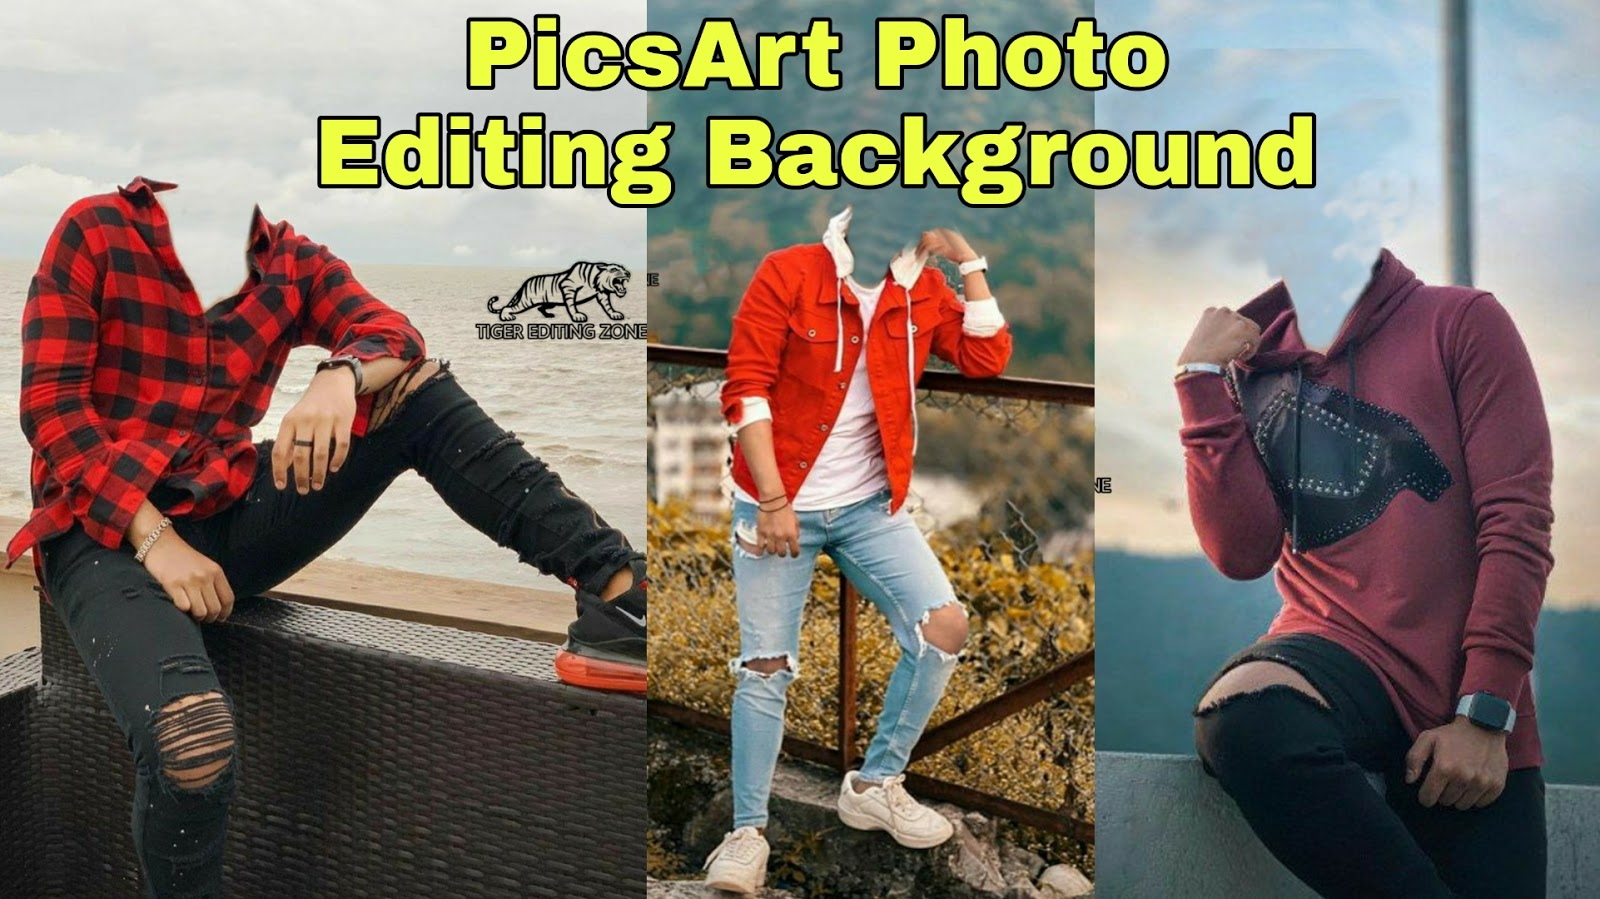 200+ PicsArt Photo Editing Background | 2020 | Hd Background for PicsArt